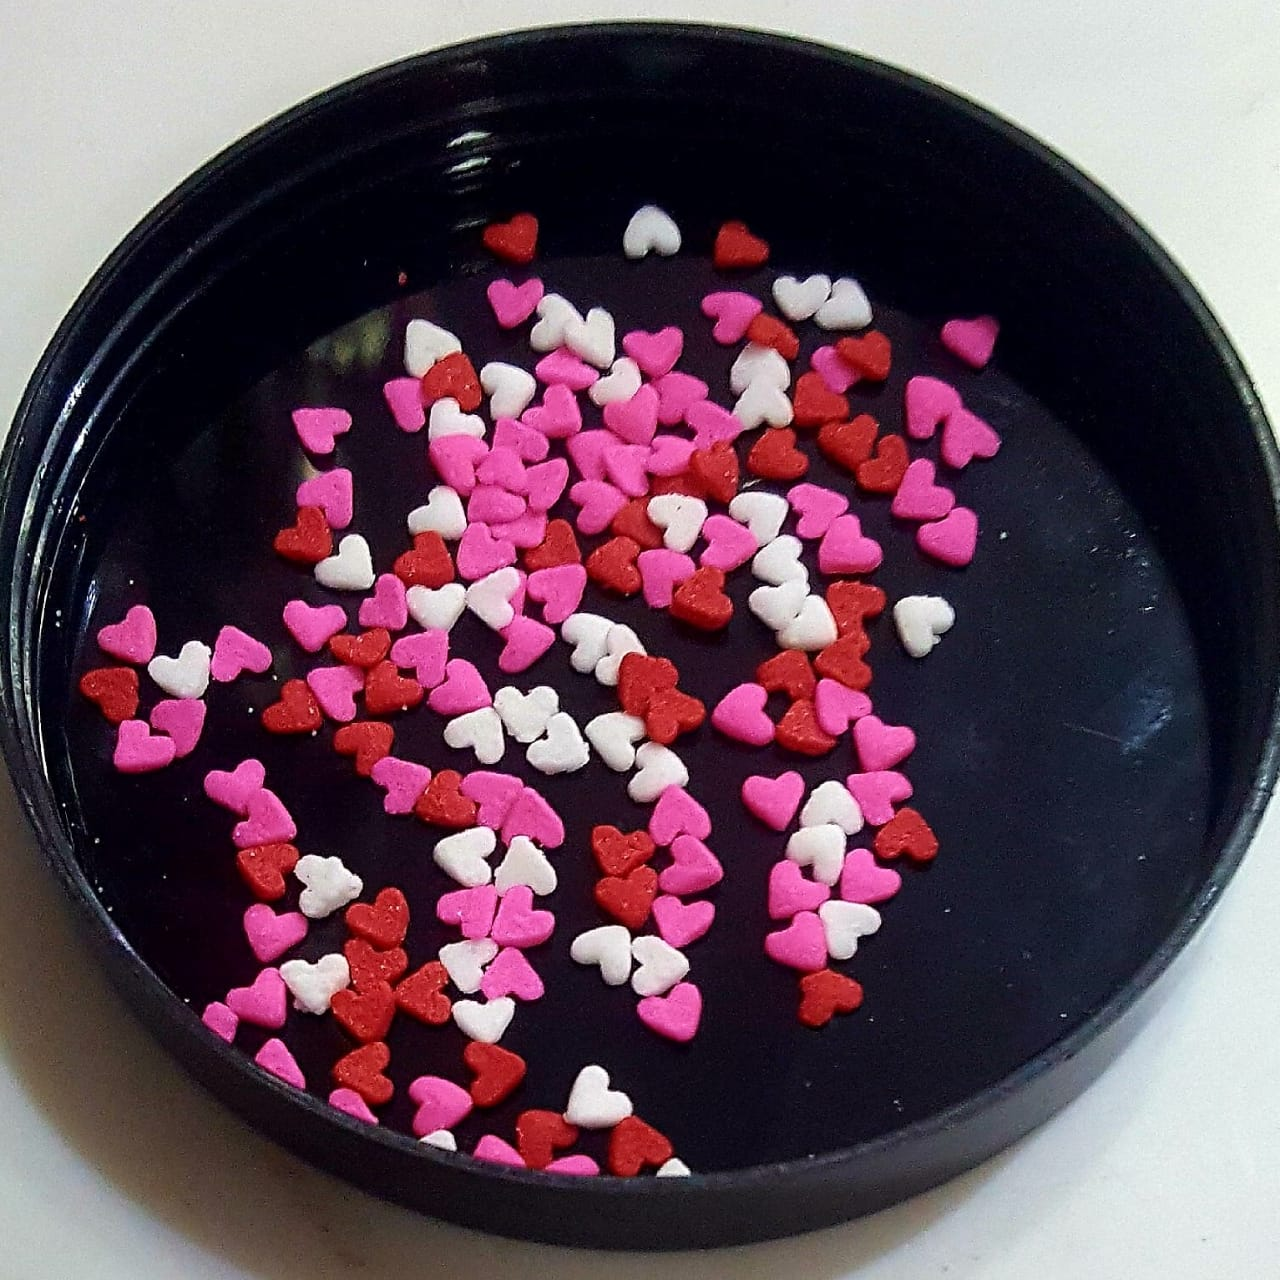 CDP015 - Mini Hearts Red White Pink Sprinkles Confetti 250gm